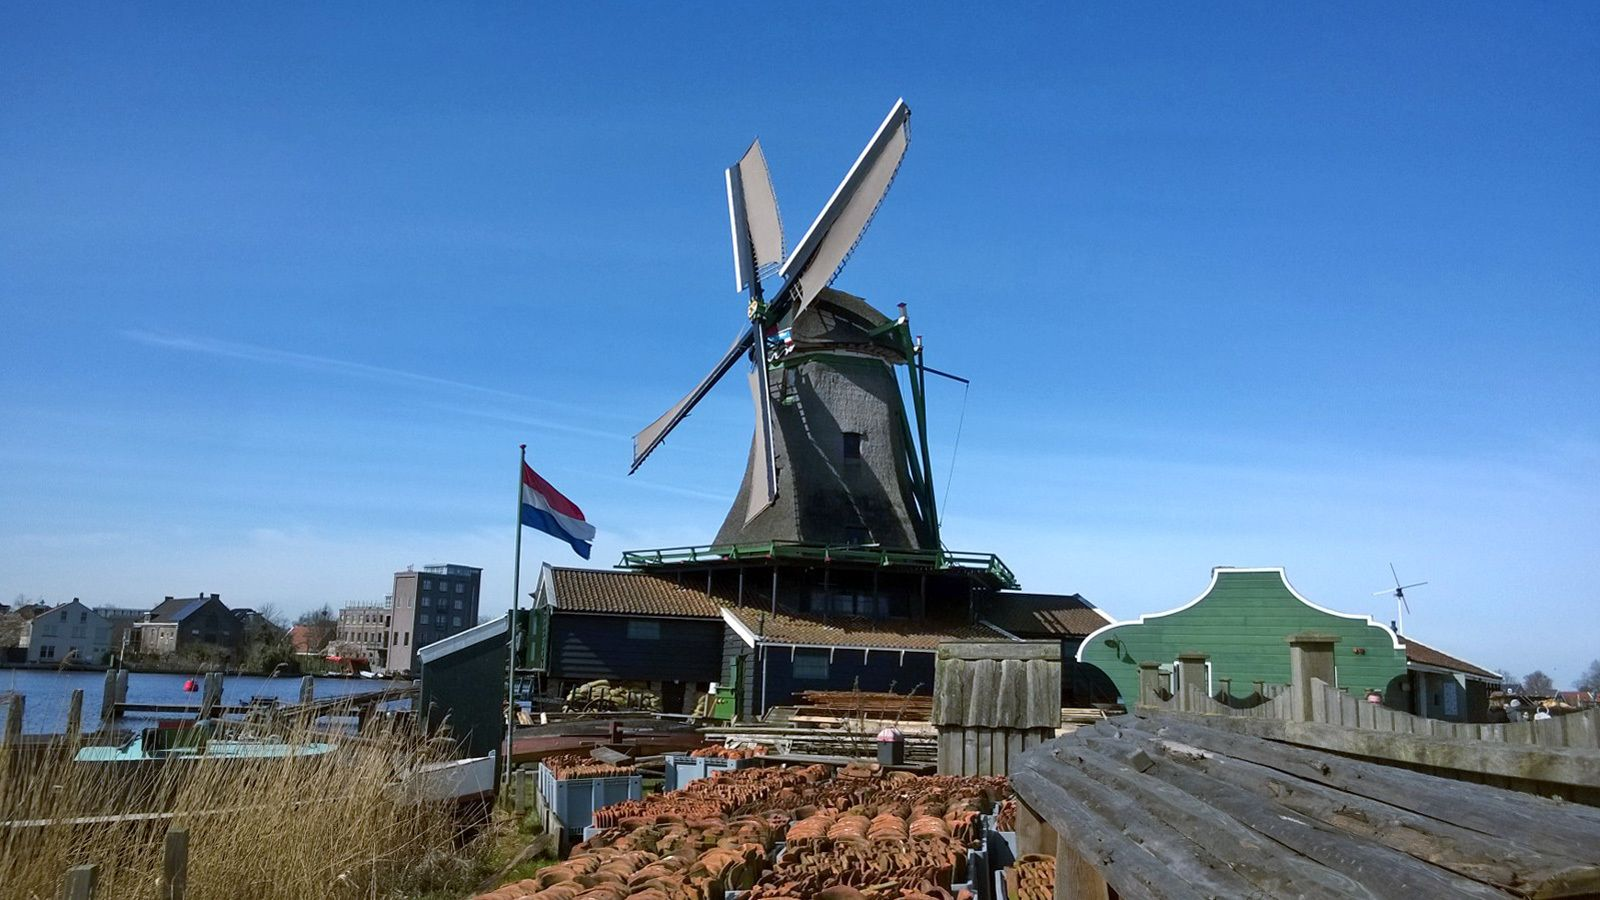 visiting a windmill in Amsterdam